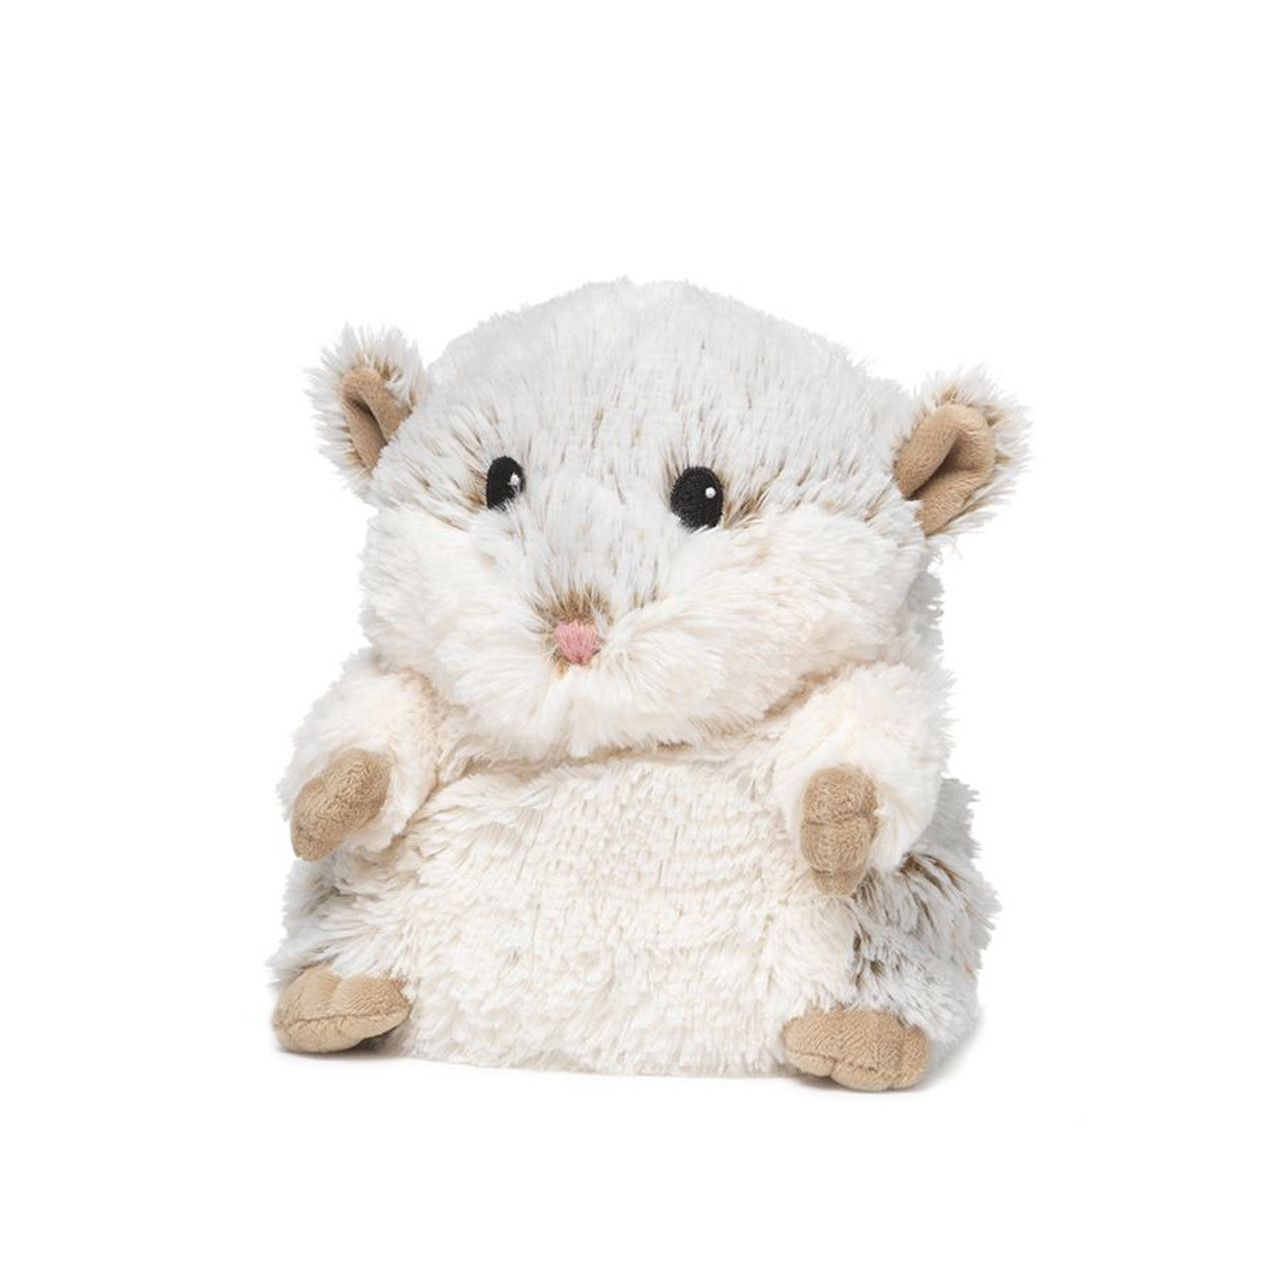 """All age groupscan have hours of funusingtheirWarmies®Cozy PlushHamster,knowing that they can be warm all night long.  The 13"""" Hamster is fully microwavable yet entirely safe to hold tight after taking a bath, putting on PJs, and heading up the stairs to bed."""